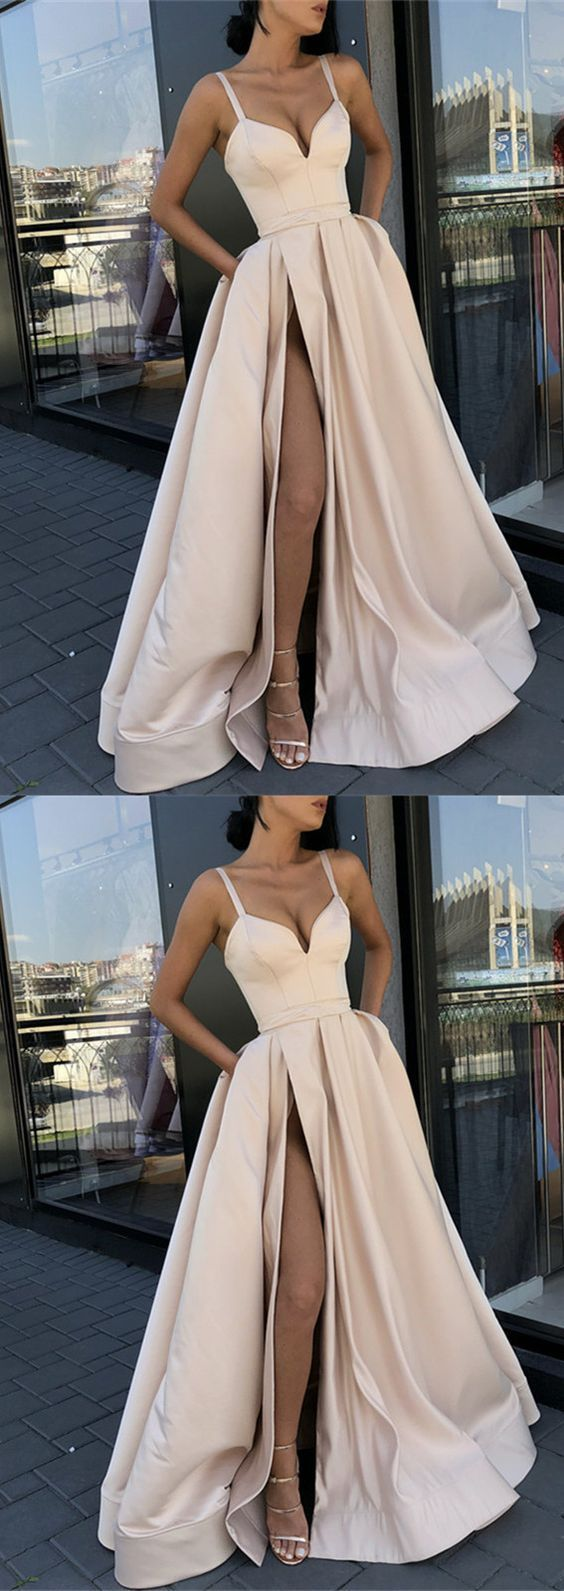 » Ball Gown V Neck Spaghetti Straps Side Split Champagne Long Prom Dresses with Pockets, Bridesmaid Dresses PD1227004